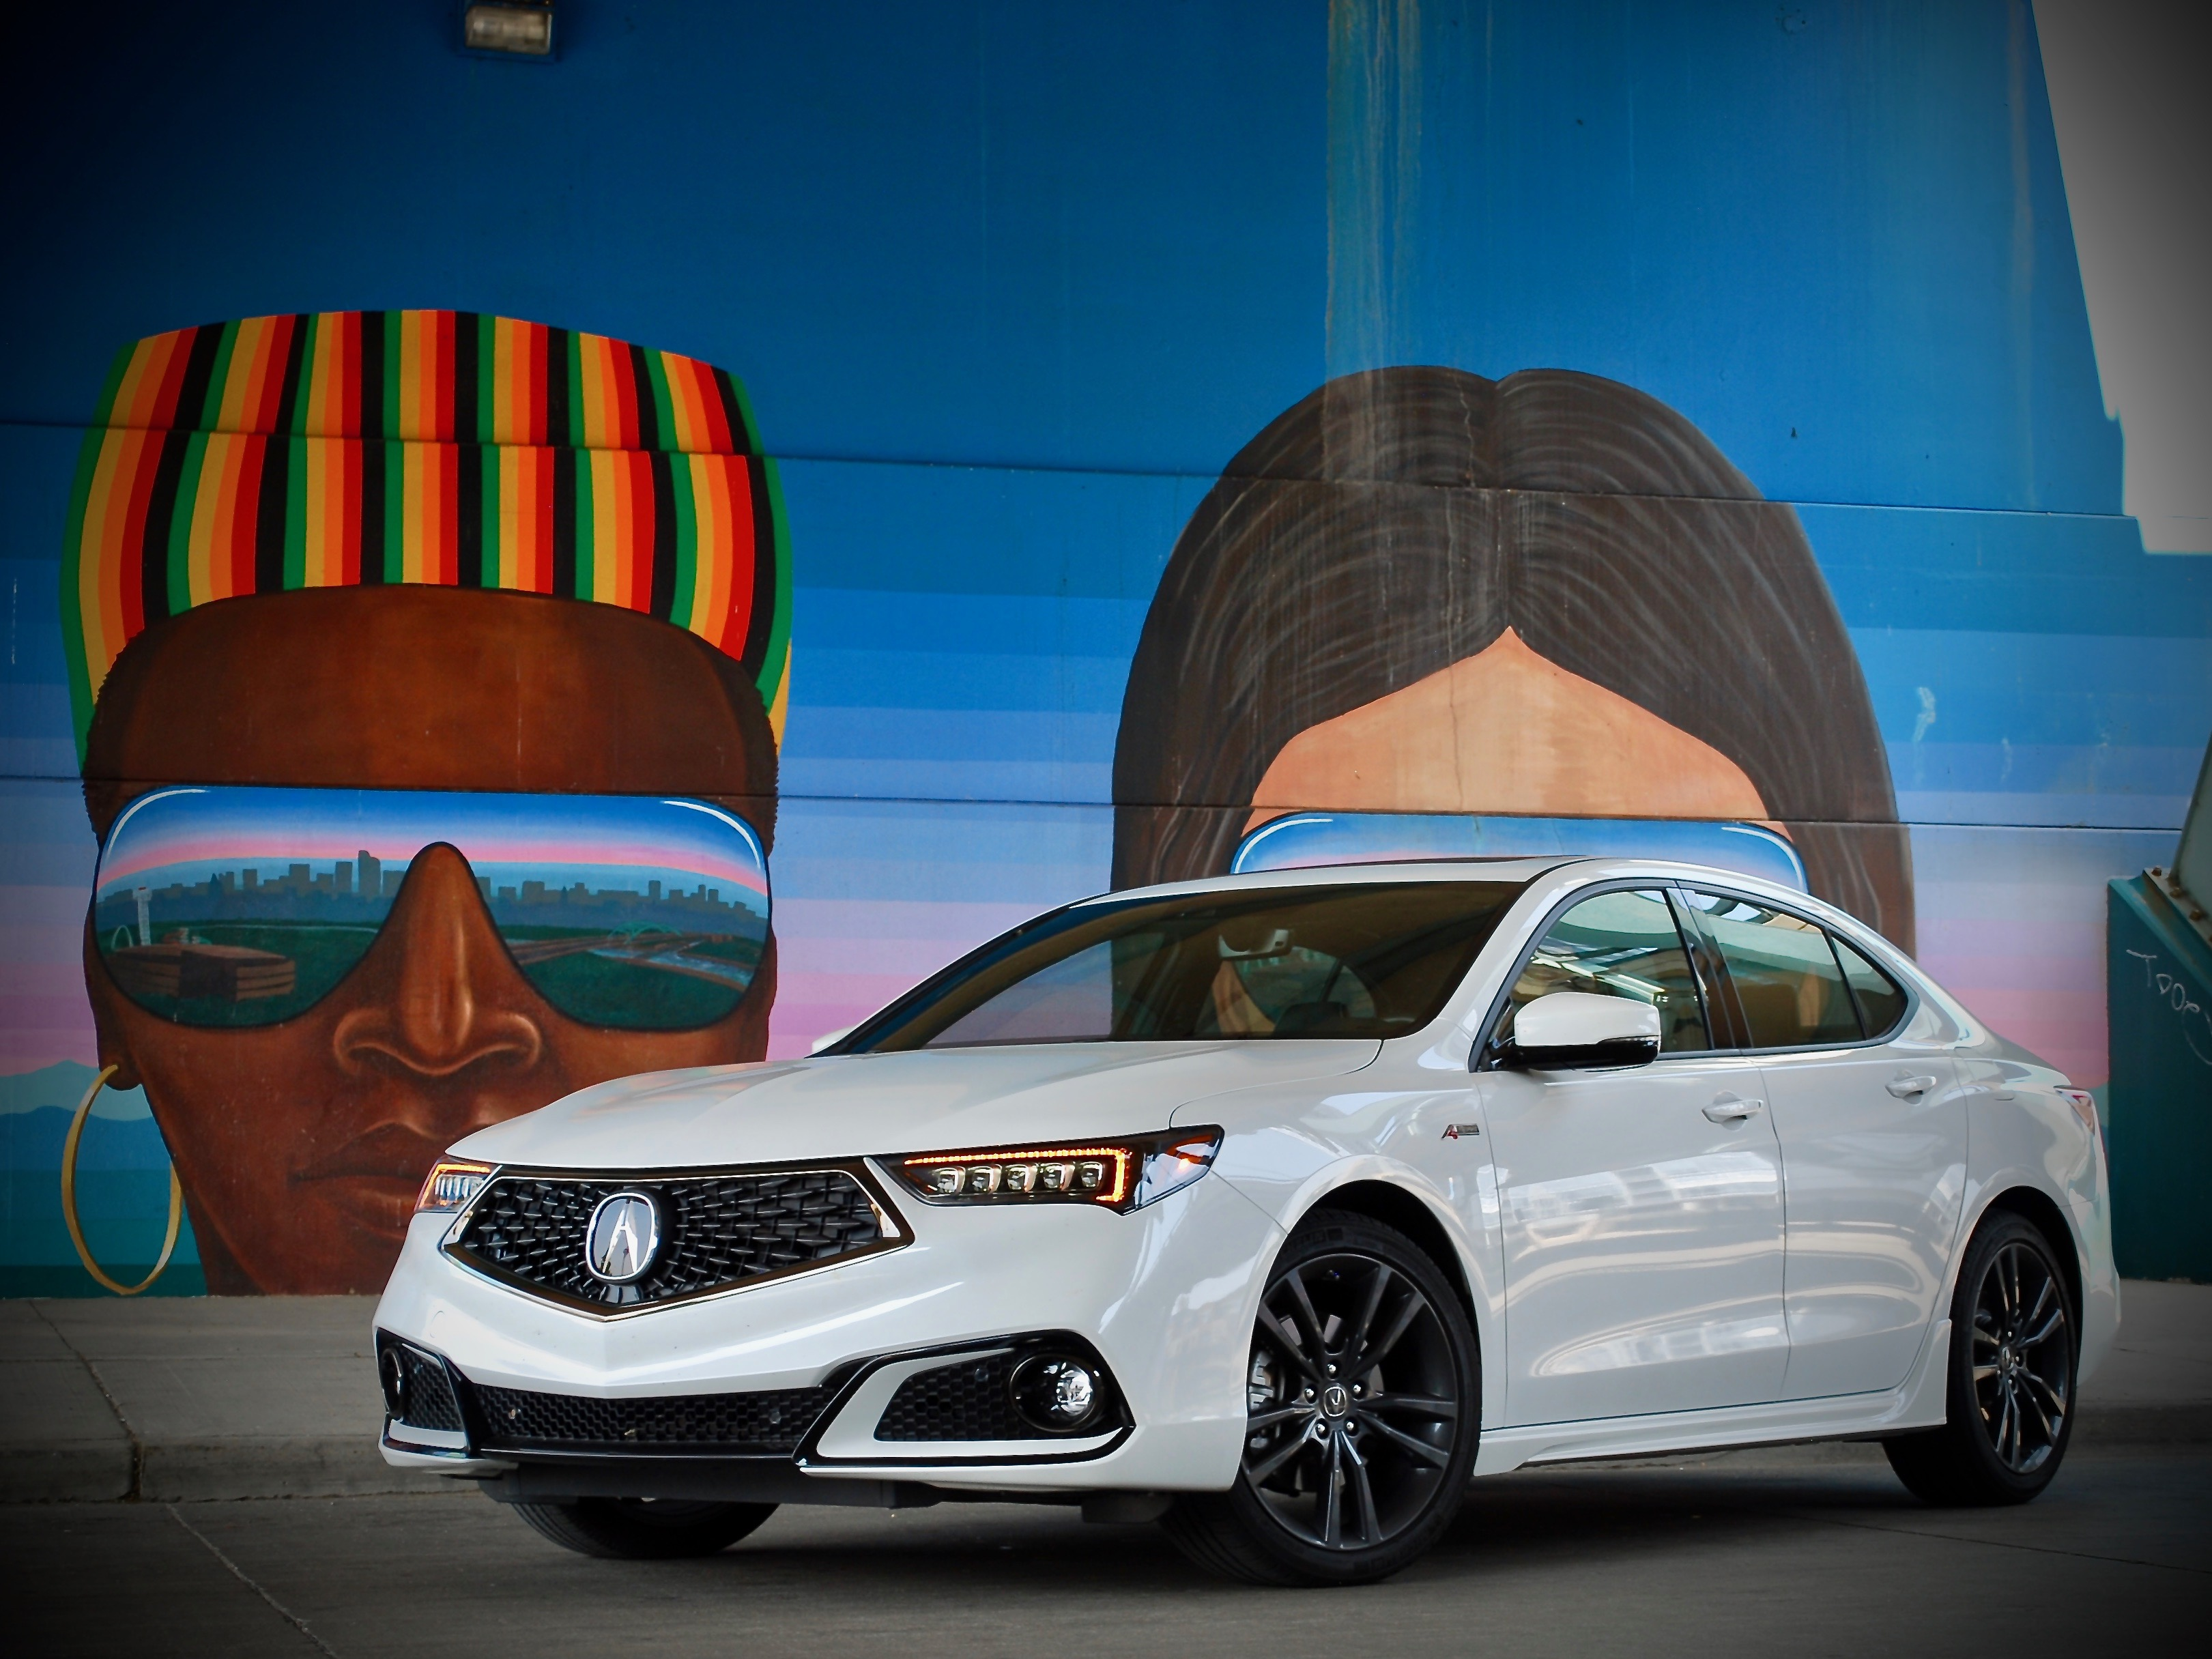 tlx meets of physics acura in htm berlin features new ct metaphysics